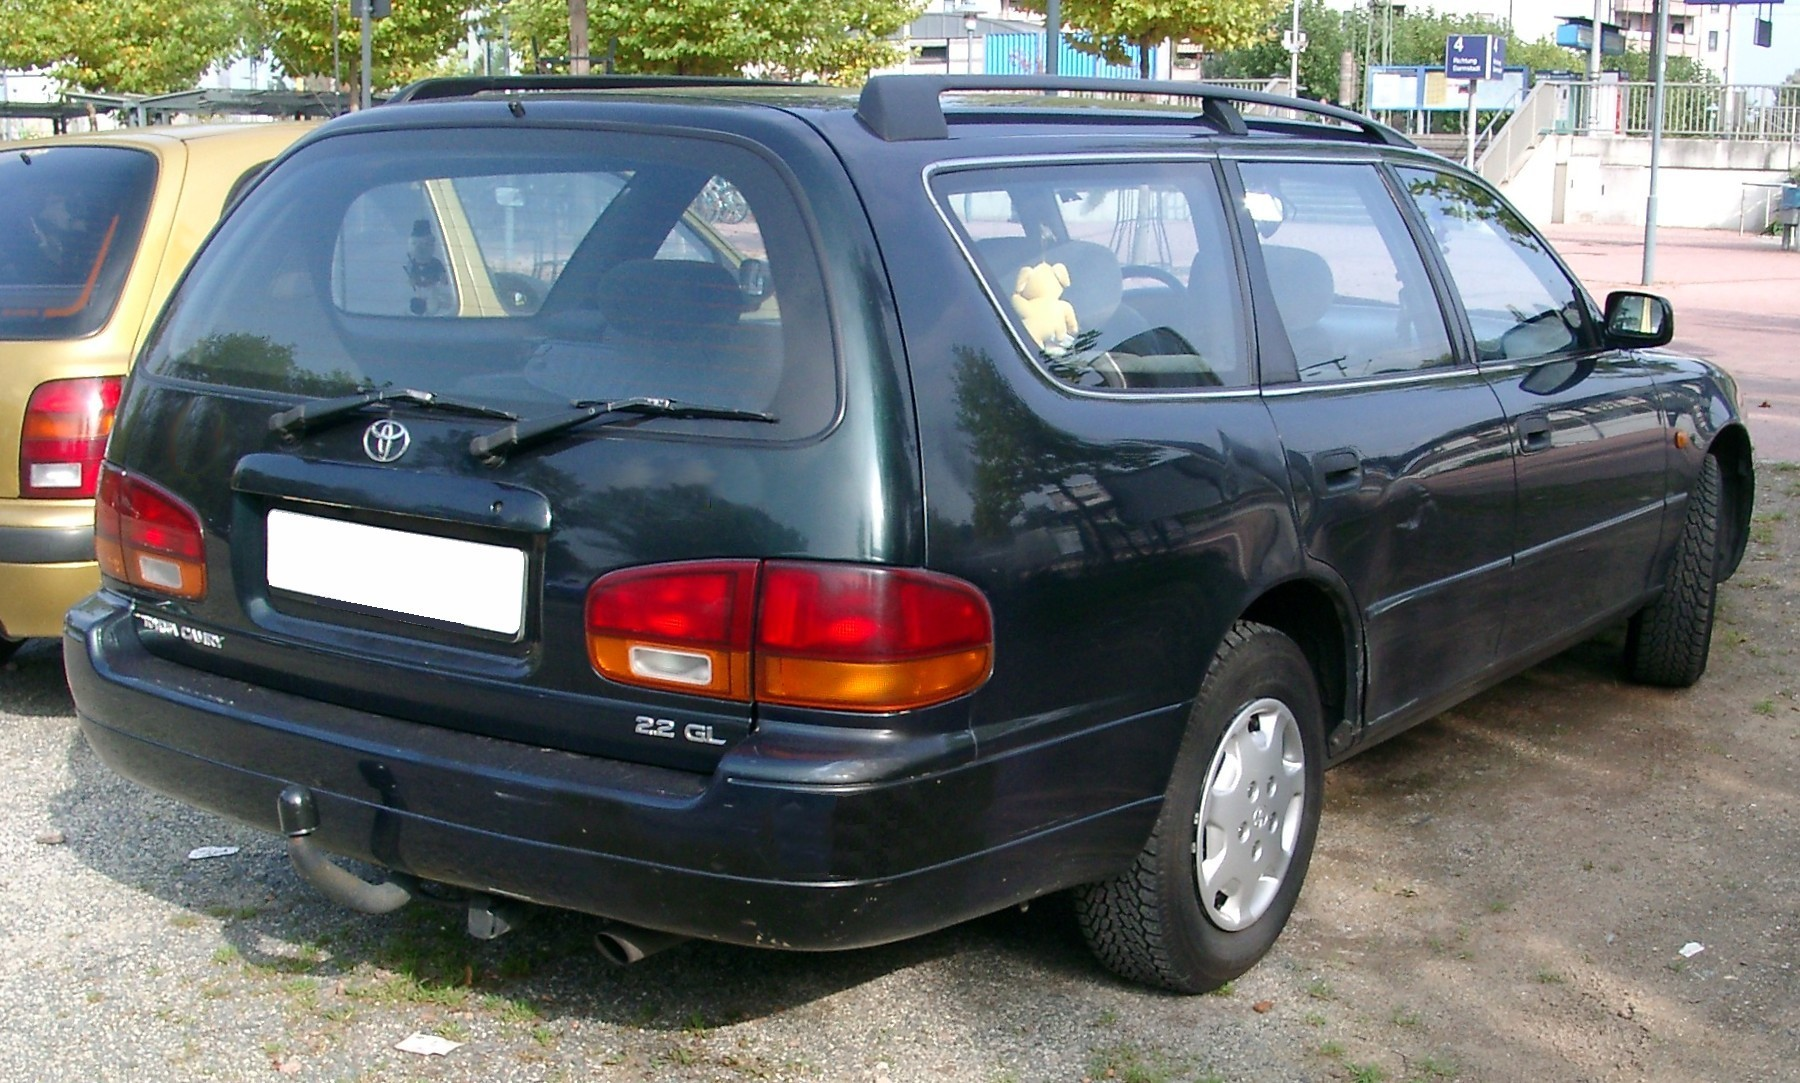 1996 toyota carina e stufenheck pictures information and specs auto. Black Bedroom Furniture Sets. Home Design Ideas